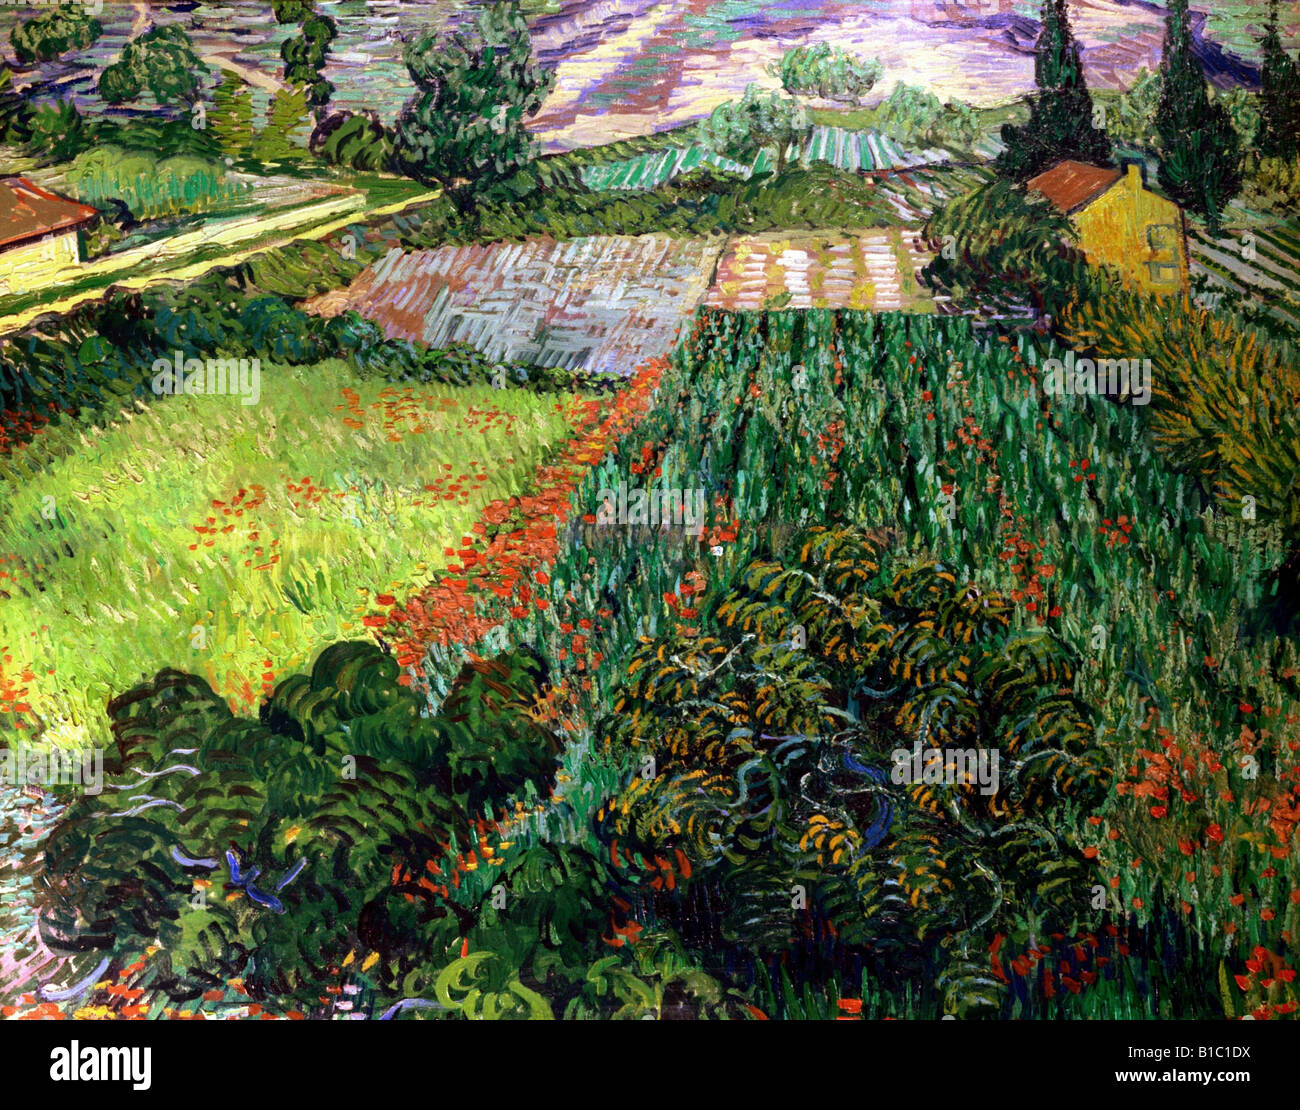 fine arts, Gogh, Vincent van, (1853 - 1890), painting, 'poppy field,', 1889 / 1890, oil on canvas, 71 cm - Stock Image